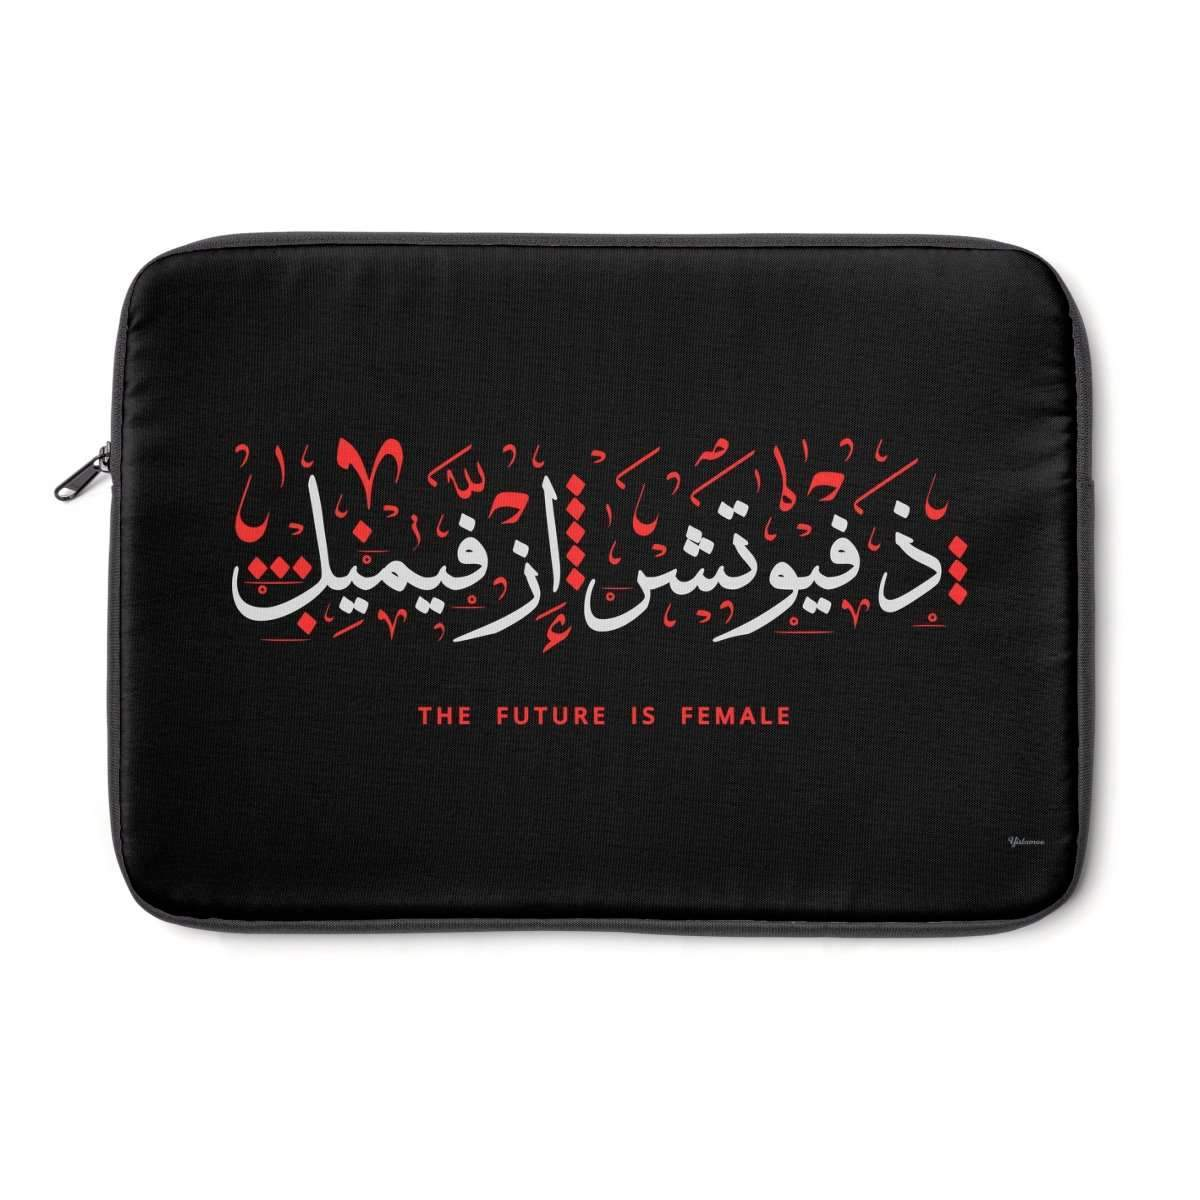 "Laptop Sleeve 13"" The Future is Female Black Laptop Sleeve"